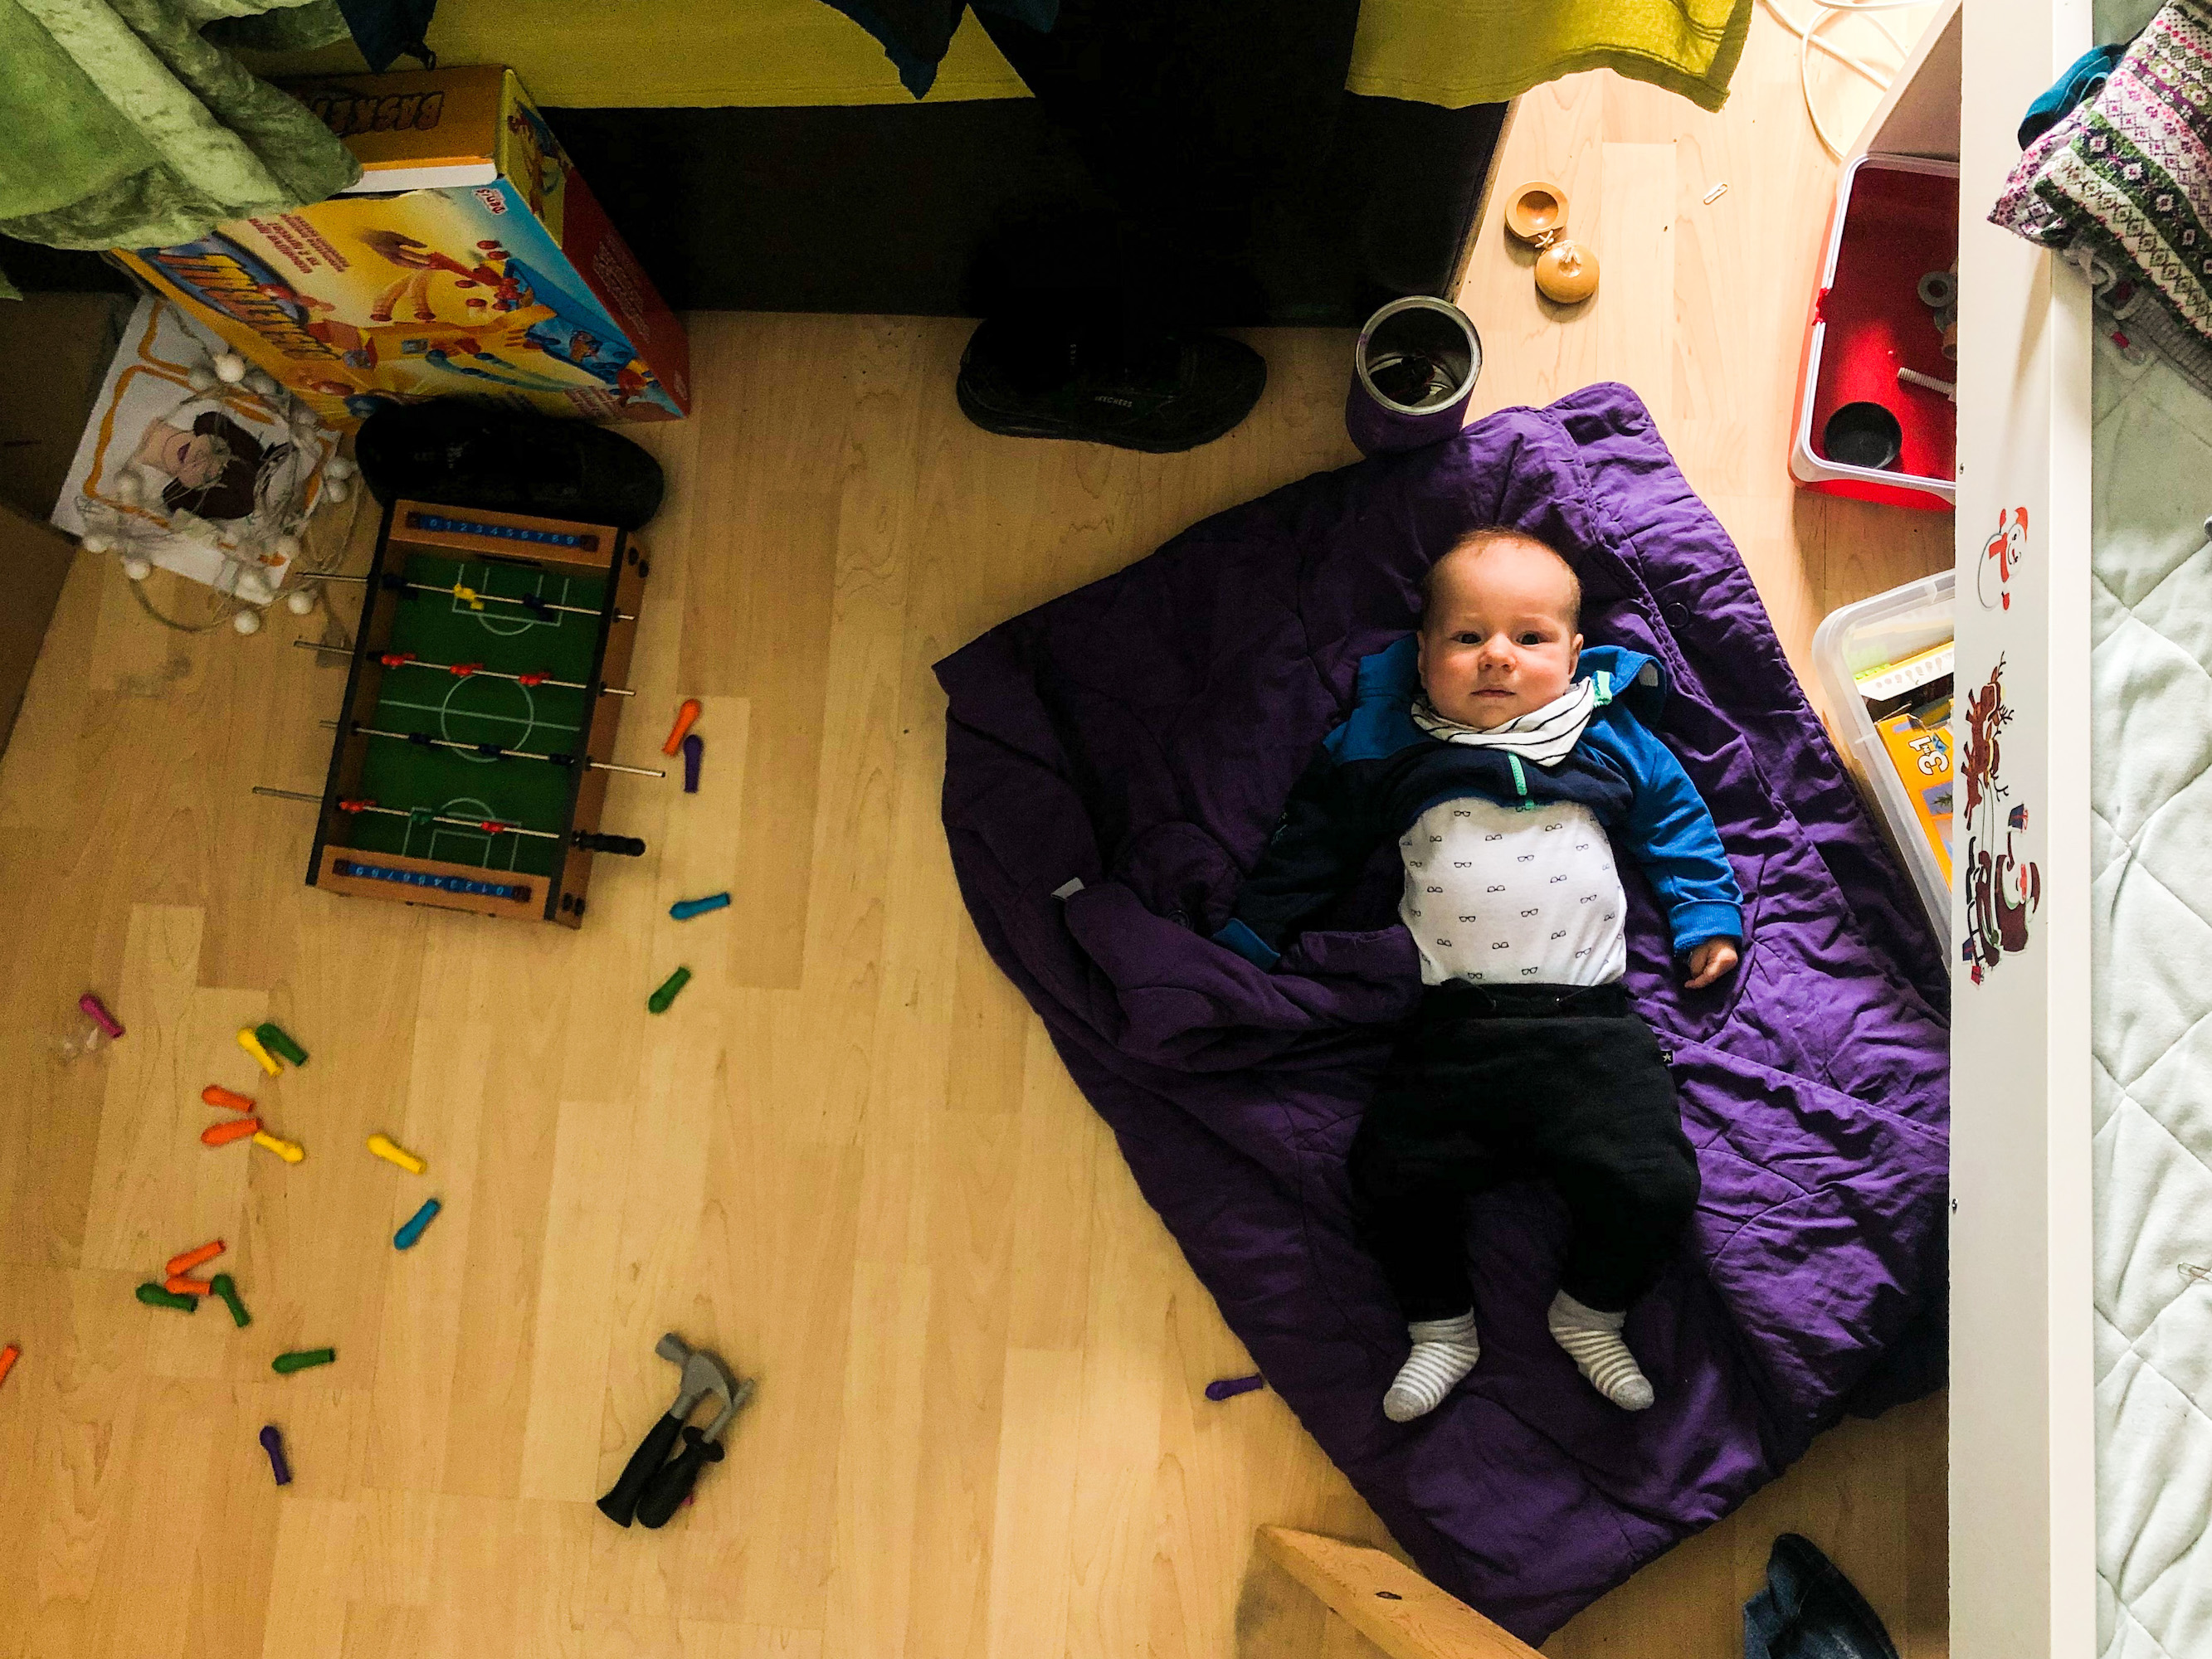 5 monthes old baby lying on the floor in mess looking straight up